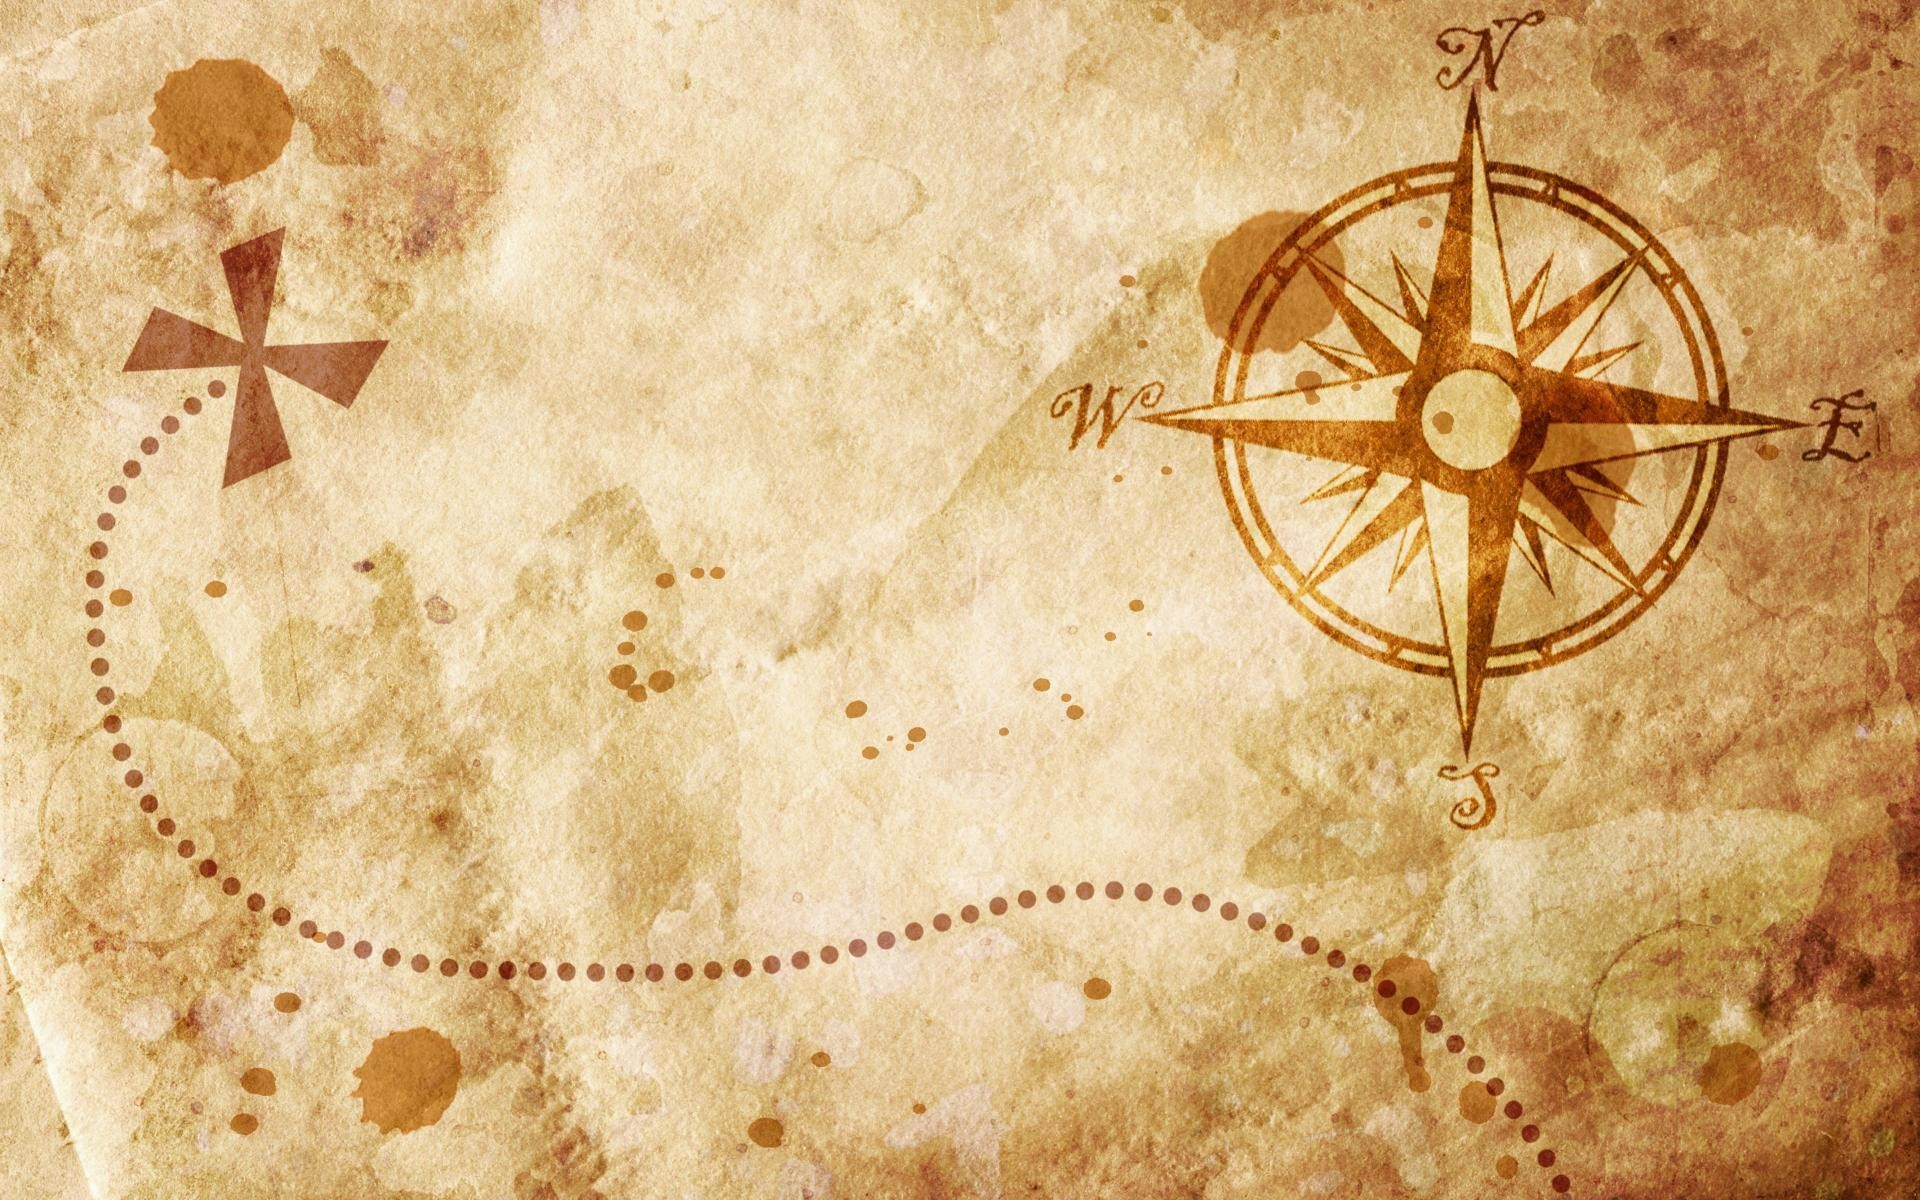 1920x1200 Old-map-with-a-compass-on-it-wallpapers-